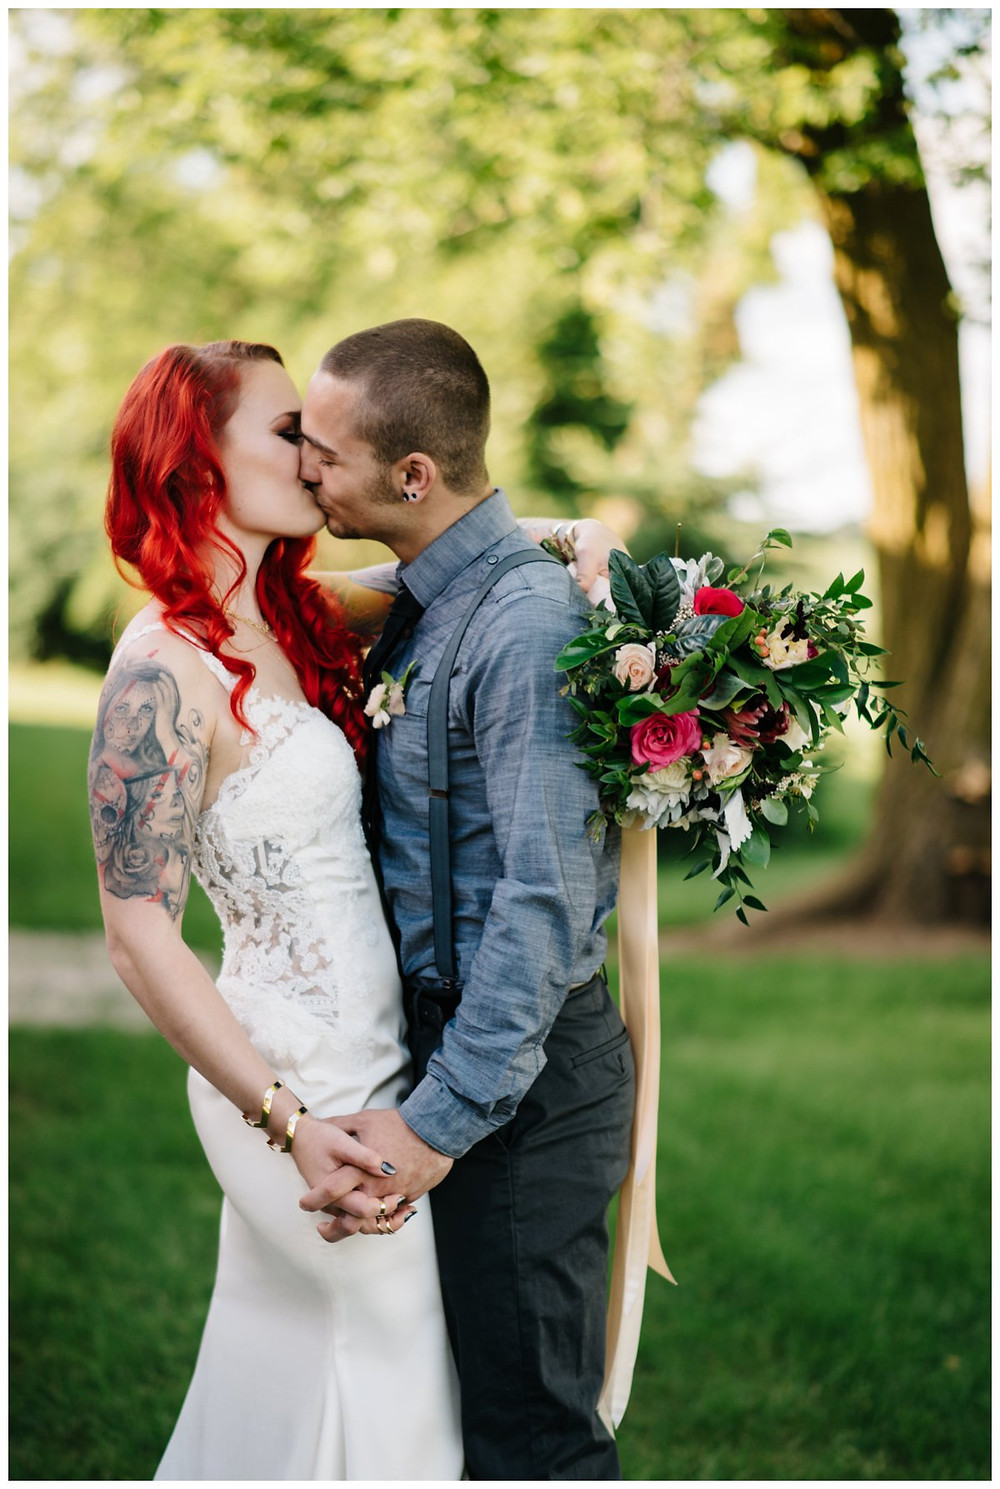 wedding-couple-holding-hands-kissing-at-homestead-meadows-styled-shoot-by-milwaukee-wedding-photographer-kyra-rane-photography